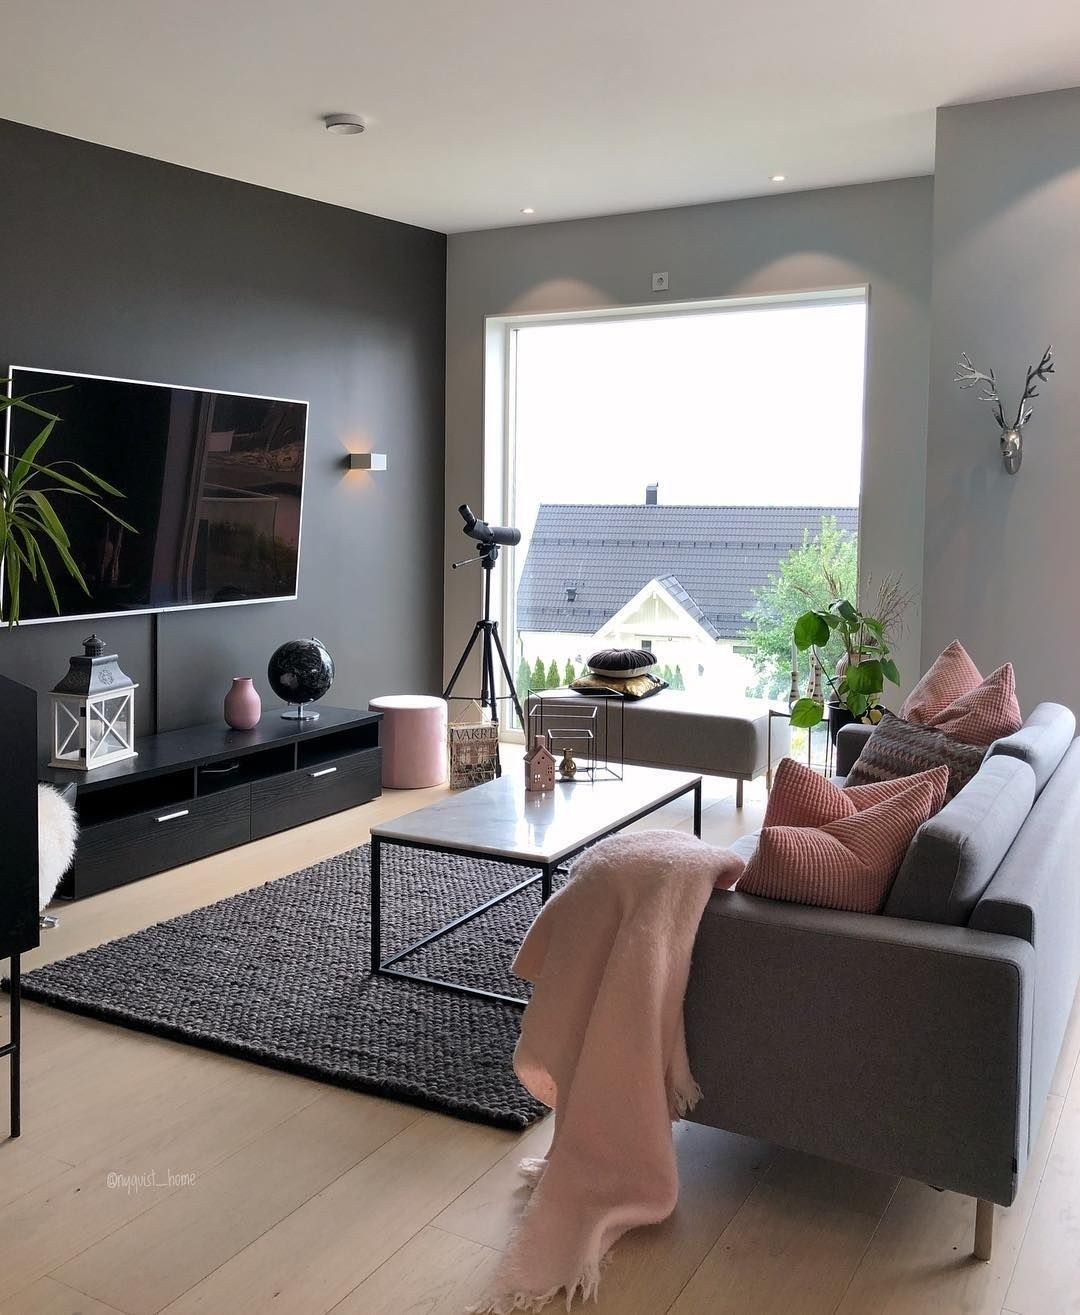 78 Models Very Snug And Practical Decoration Ideas For Small Living Room 6094 Smalllivin Classy Living Room Popular Living Room Colors Romantic Living Room Most popular familyroom ideas